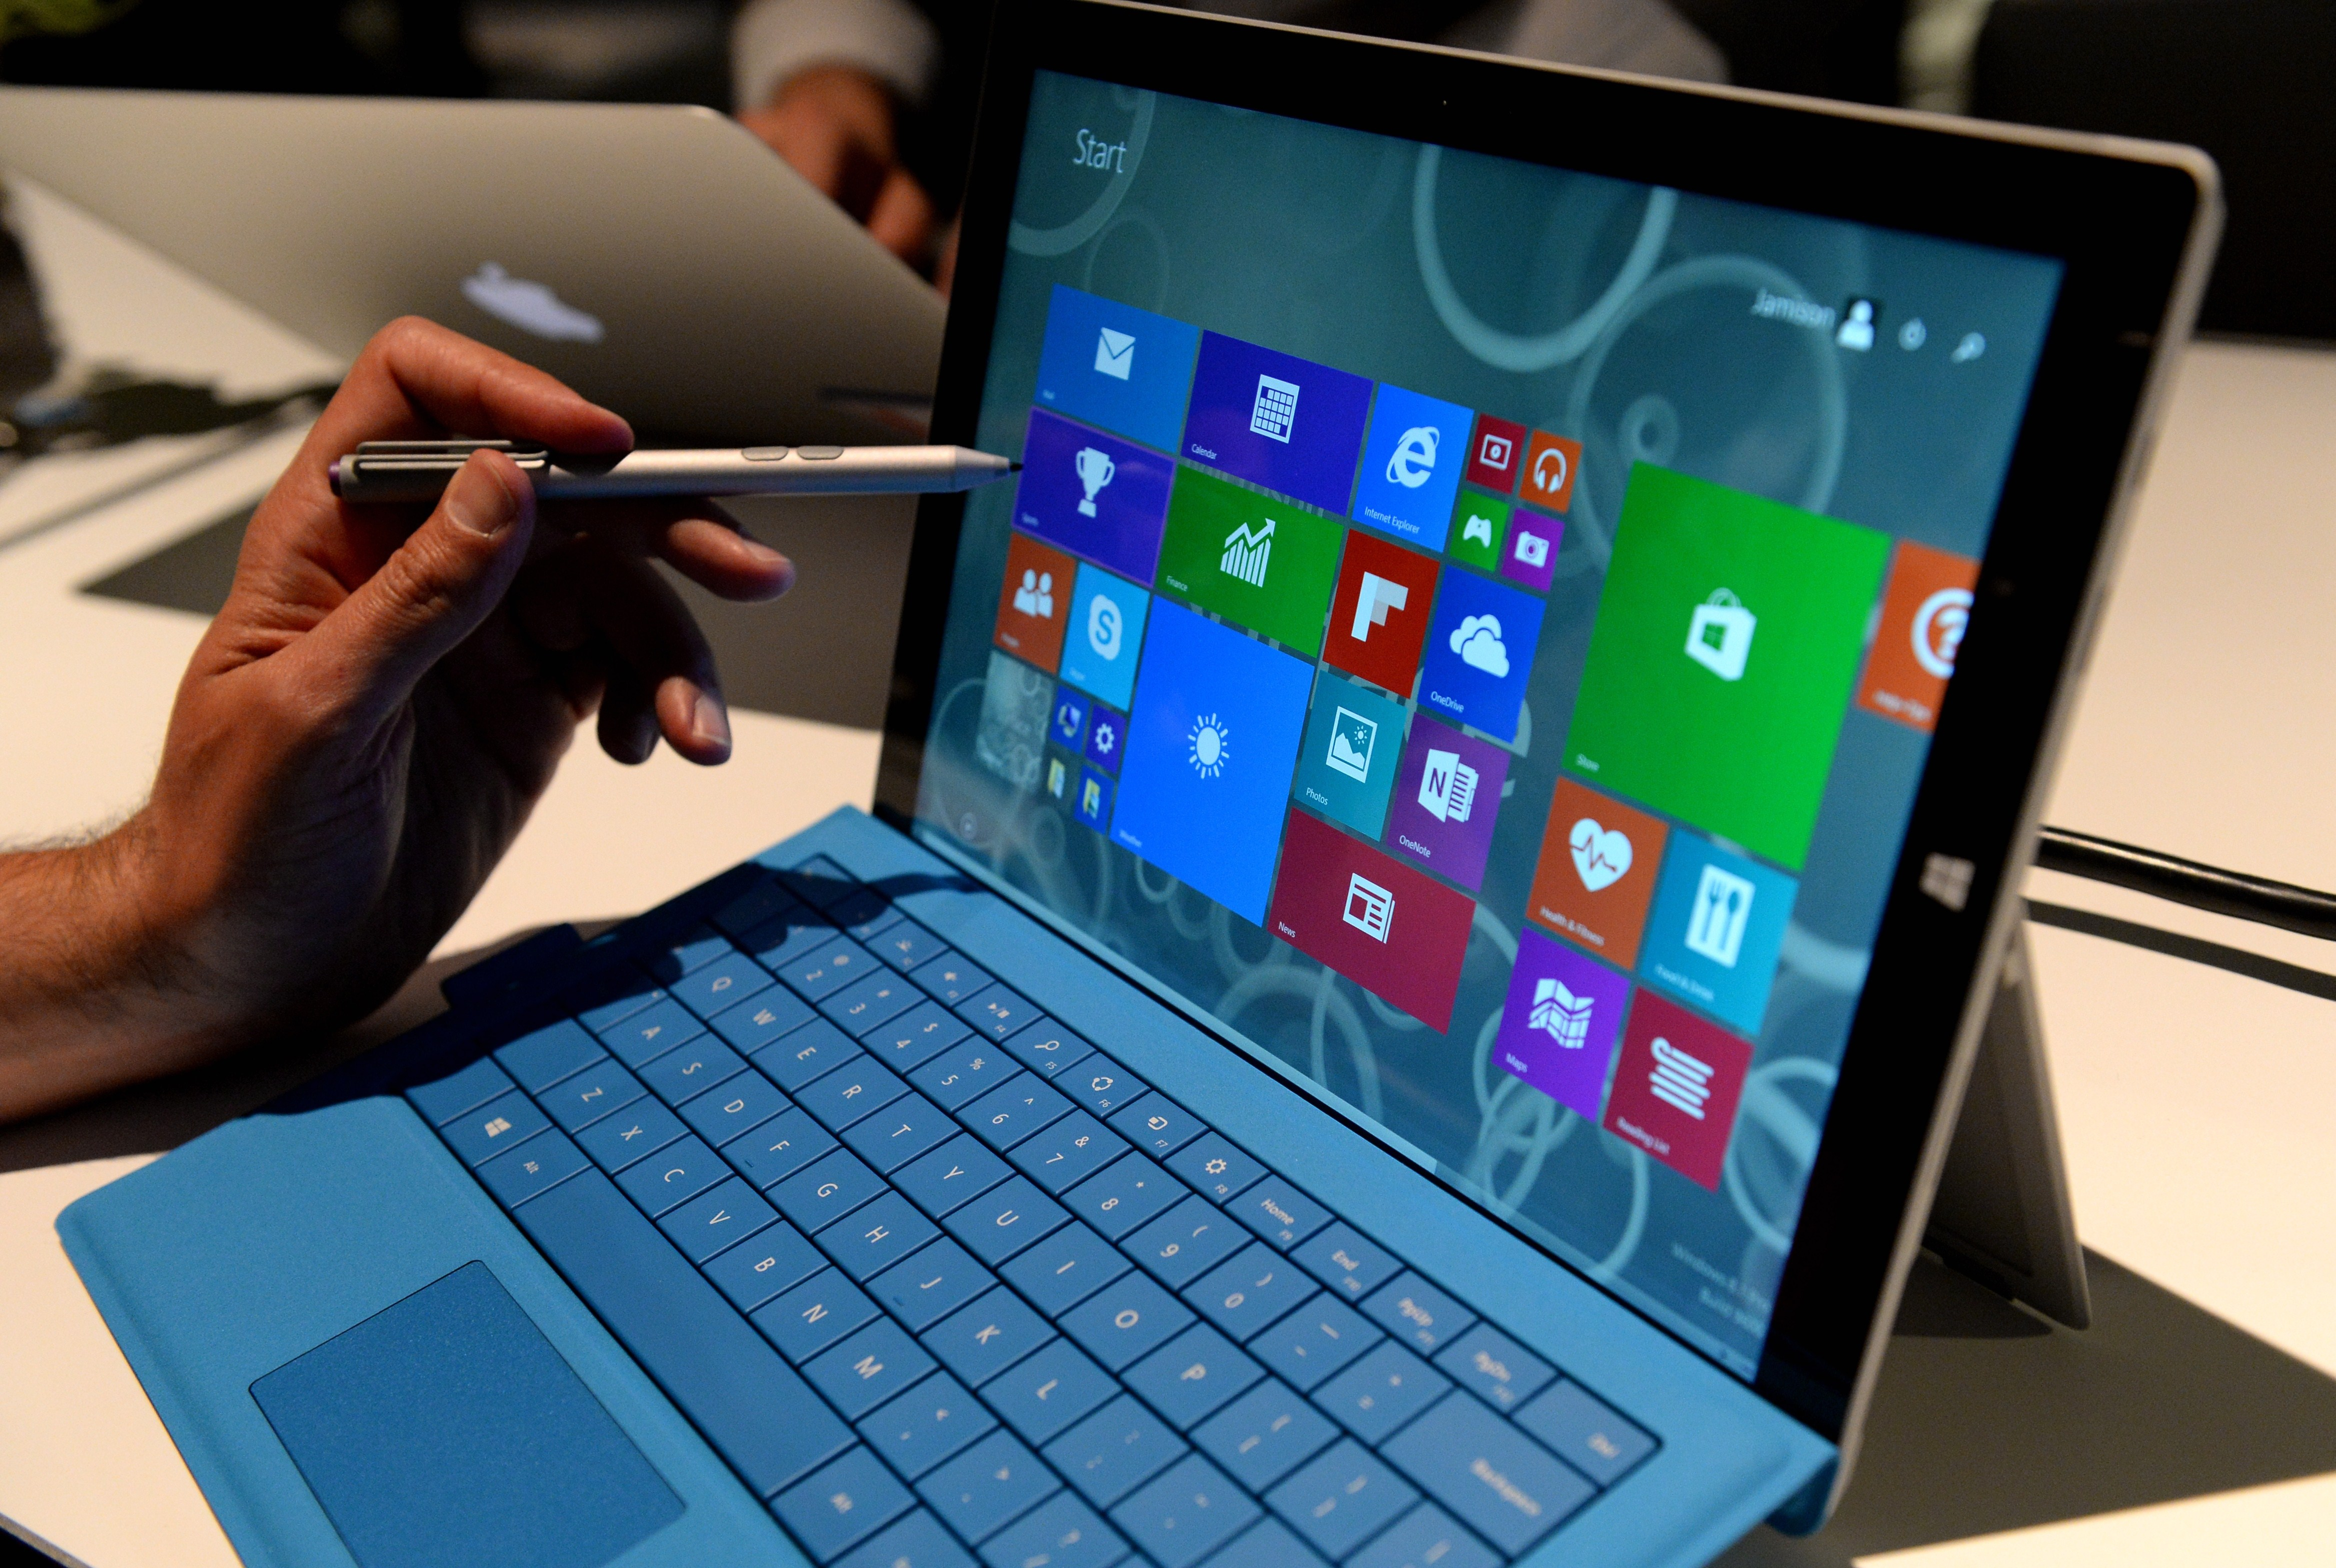 The new Microsoft Surface Pro 3 tablet with detachable keyboard and pen for writing on the screen after it was unveiled May 19, 2014 in New York.